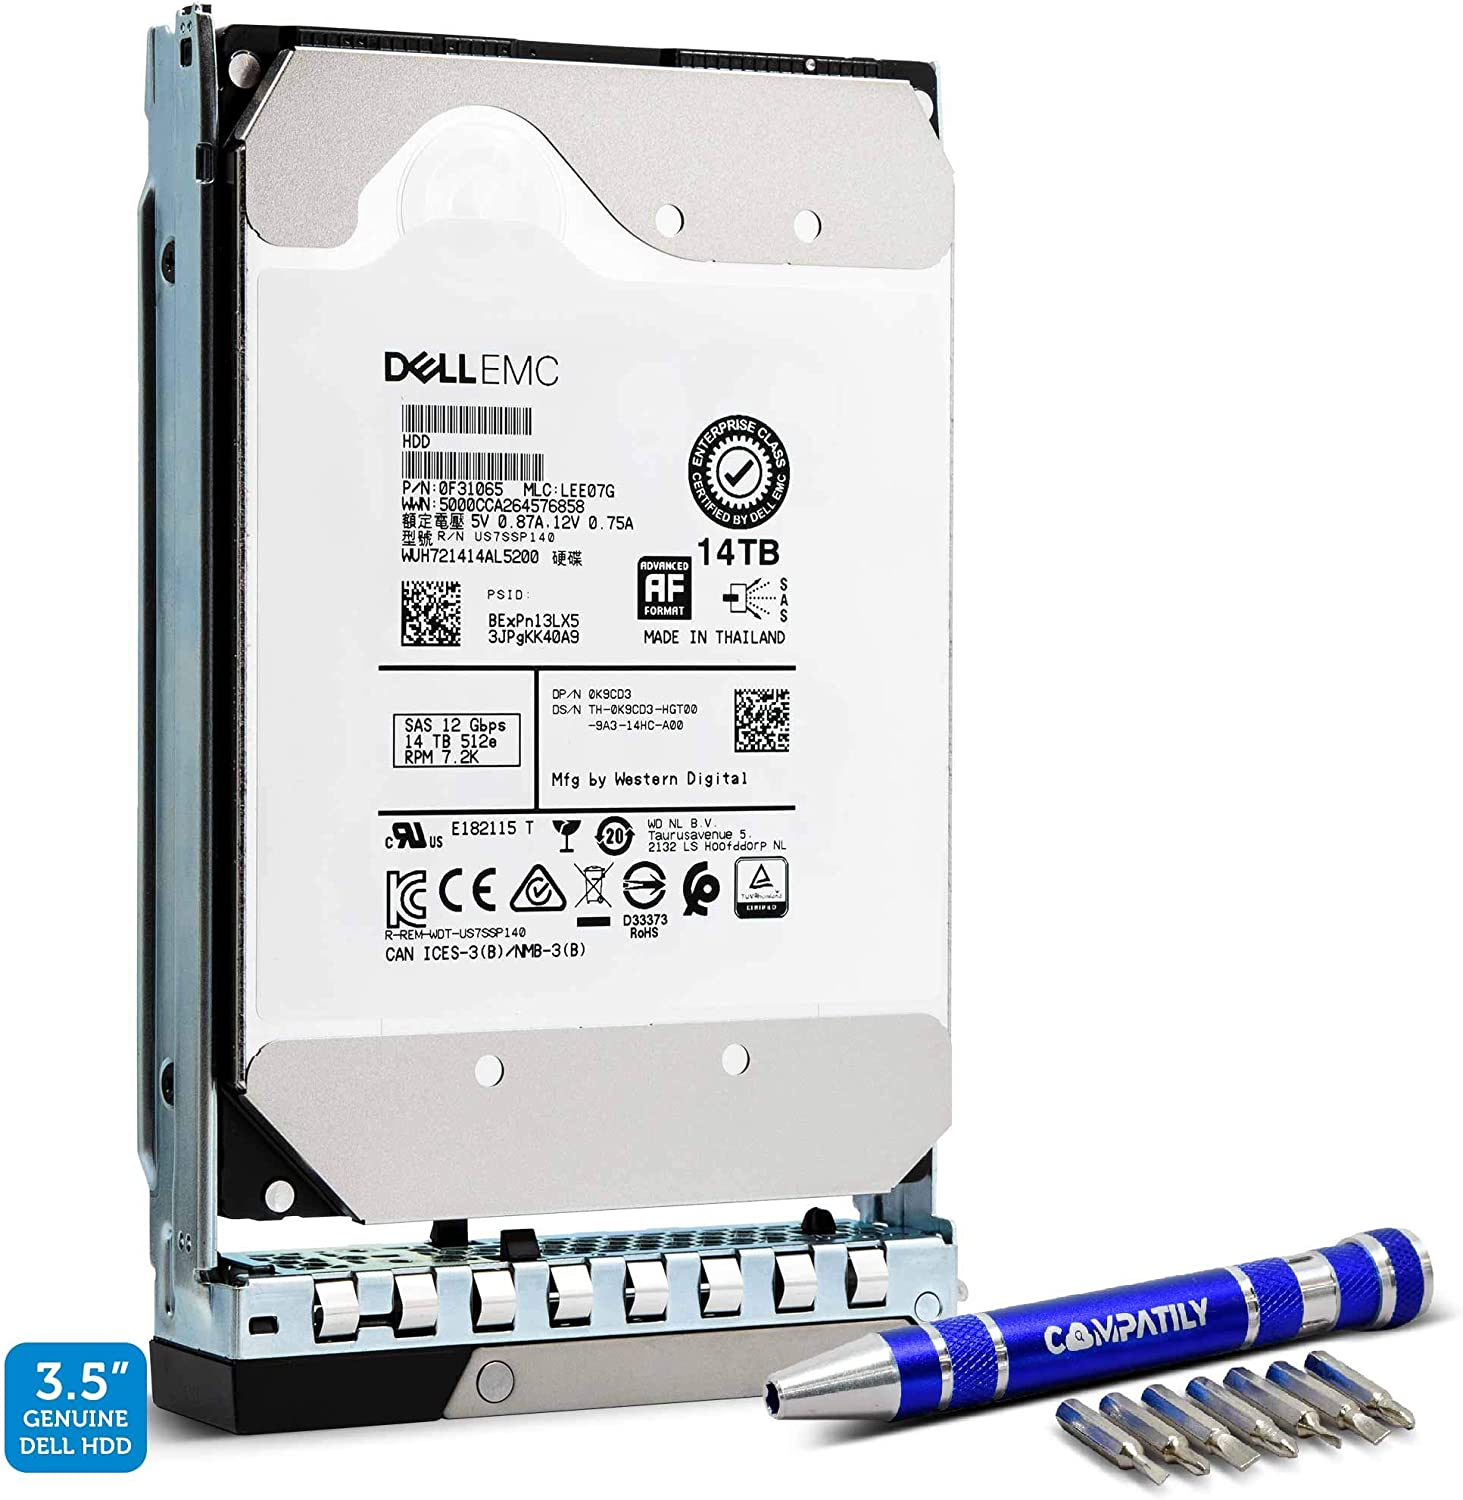 Dell 400-BEII NPDDP 14TB 7.2K RPM SAS 12Gb/s 3.5-Inch Enterprise Hard Drive in 14G LFF Tray for Dell EMC Servers Bundle with Compatily Screwdriver Kit